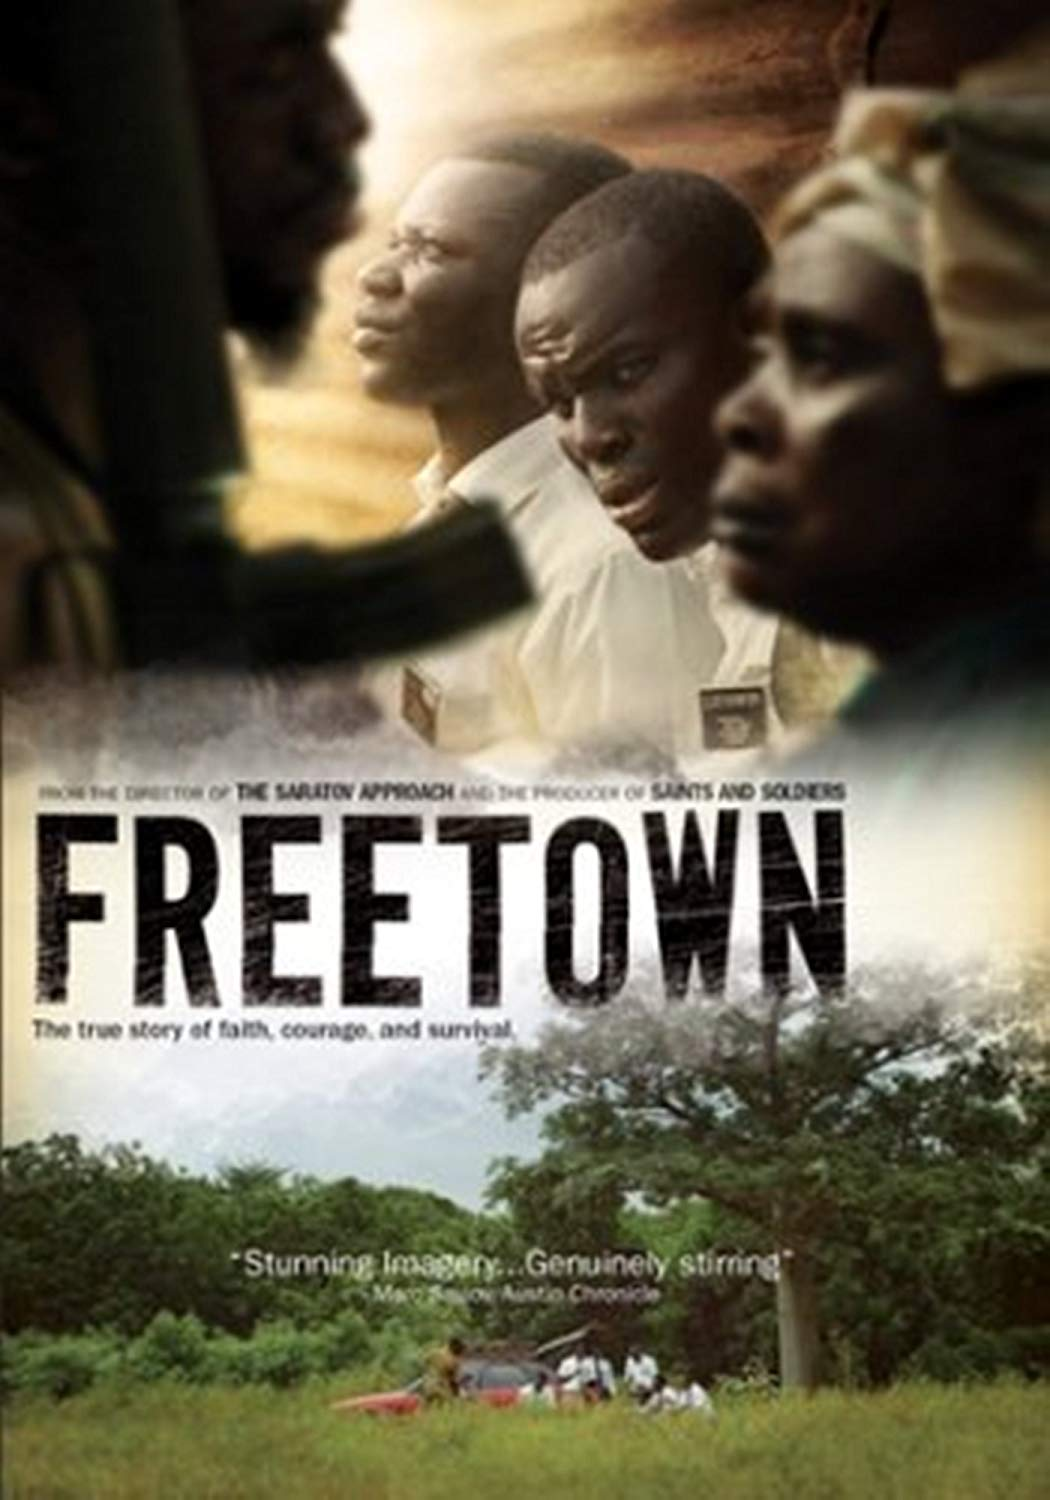 Freetown - The true story of Faith, Courage, and Survival (RELEASE DATE DEC.2016)